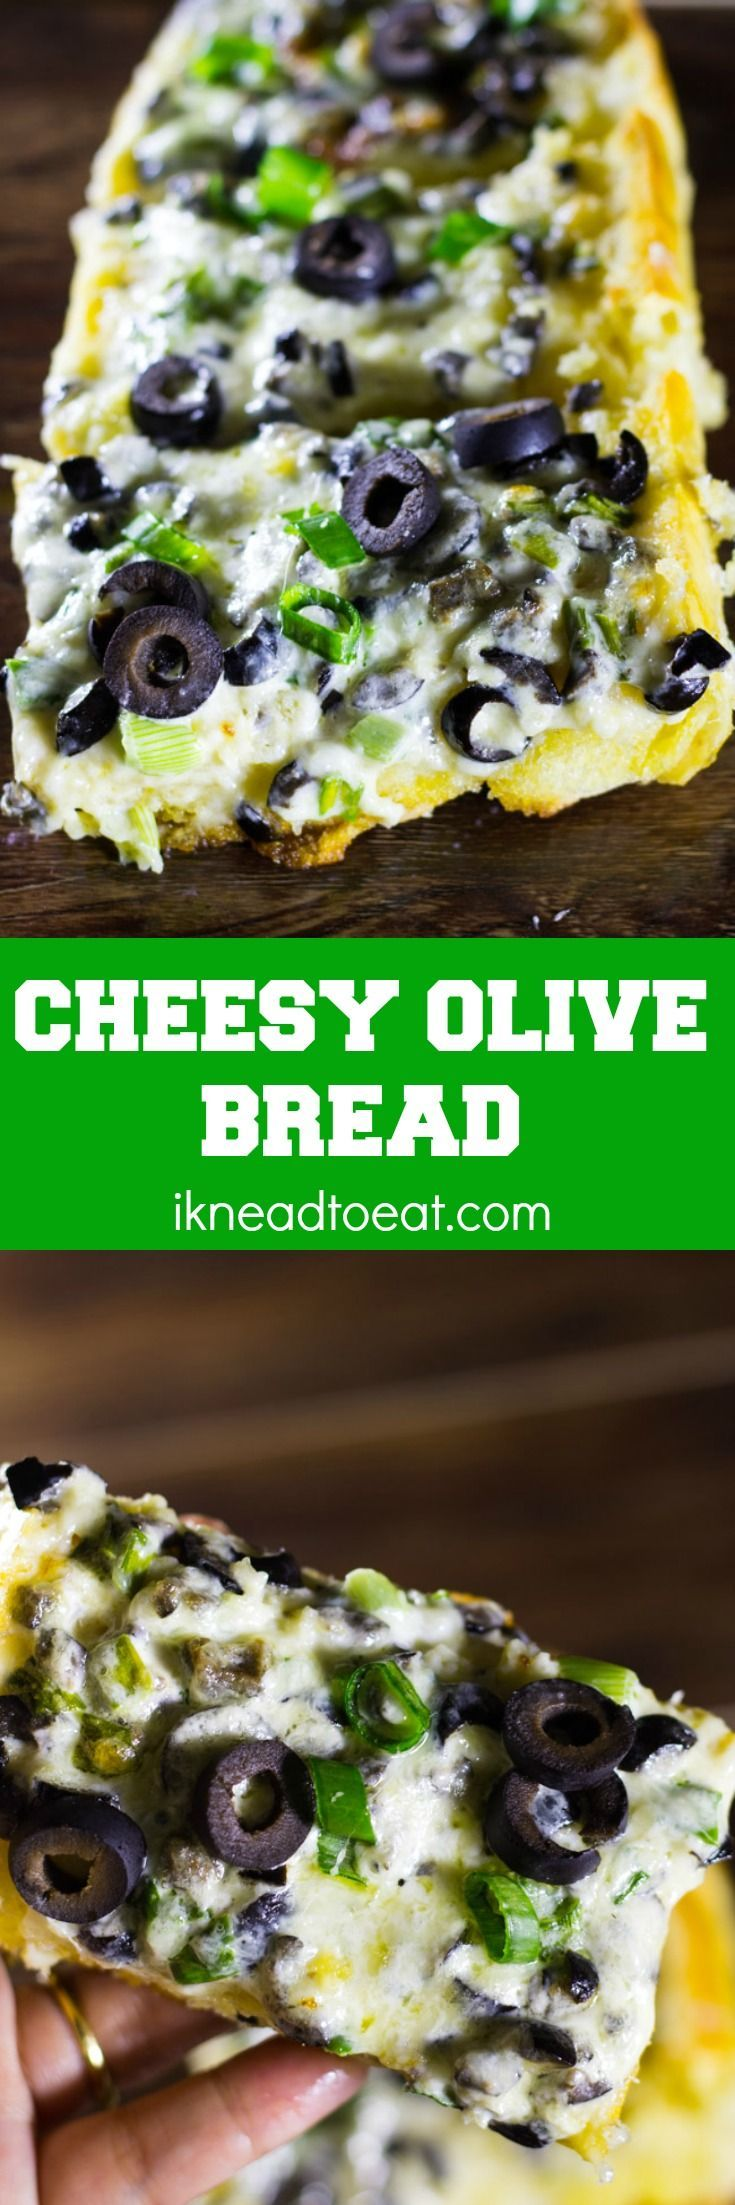 NEW! This Cheesy Olive Bread is outrageously delicious because it's made from a mouthwatering trinity of cheese, butter and mayo! Also features crusty bread...crusty bread is always good!